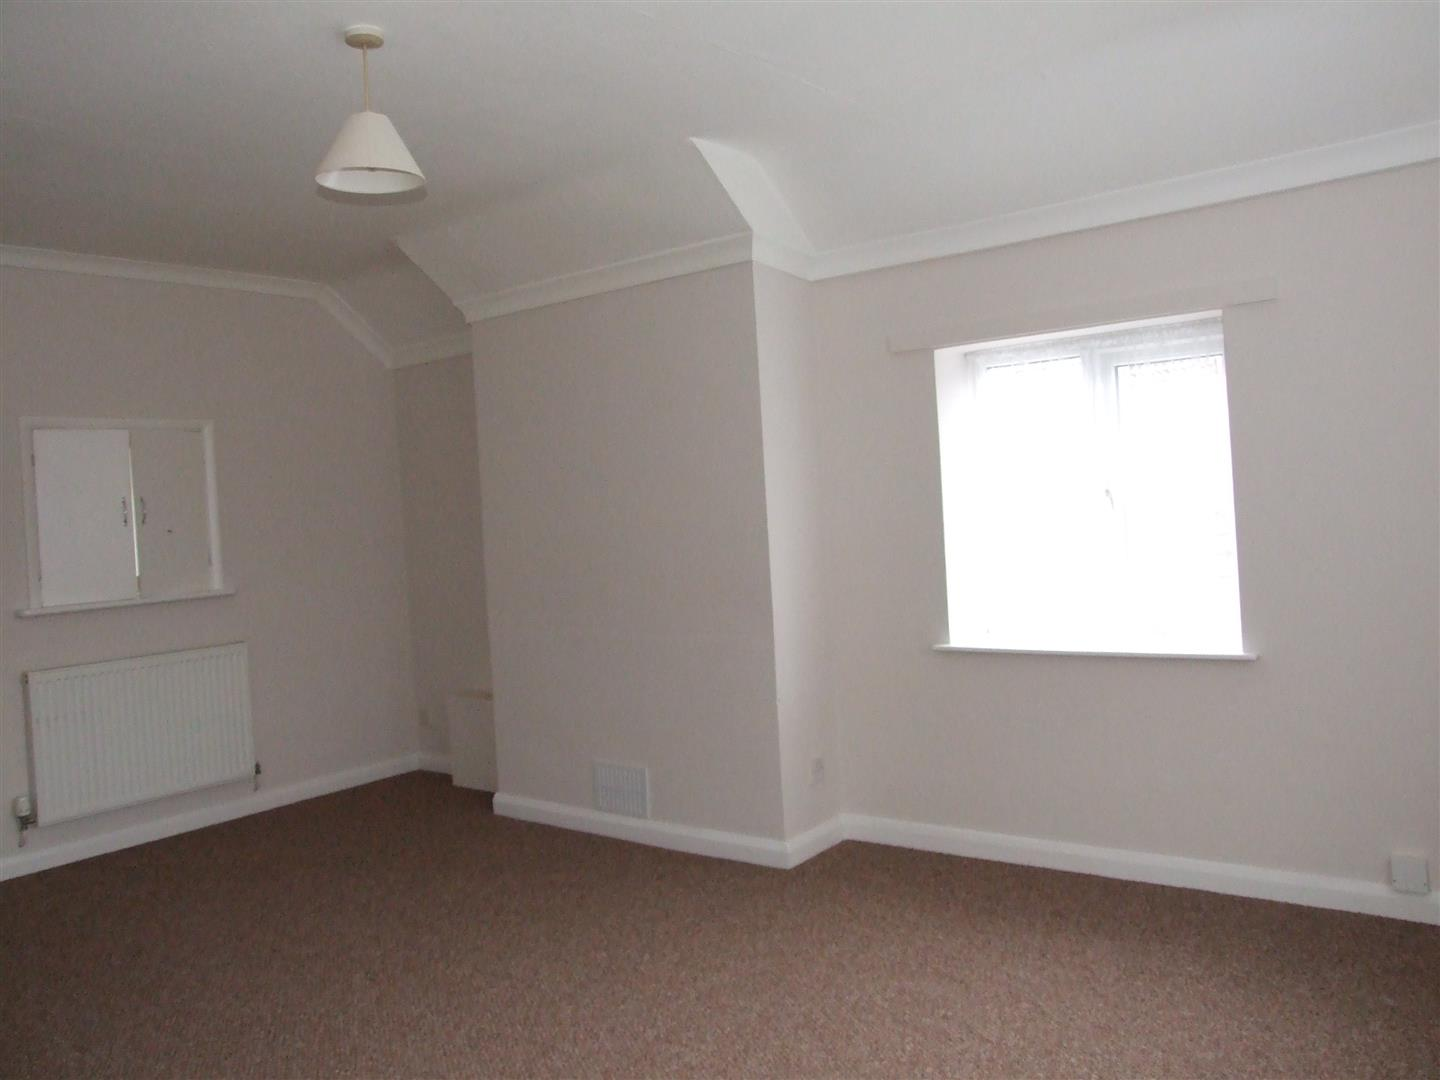 2 bed flat to rent in Sutton Bridge Spalding, PE12 9SF  - Property Image 3